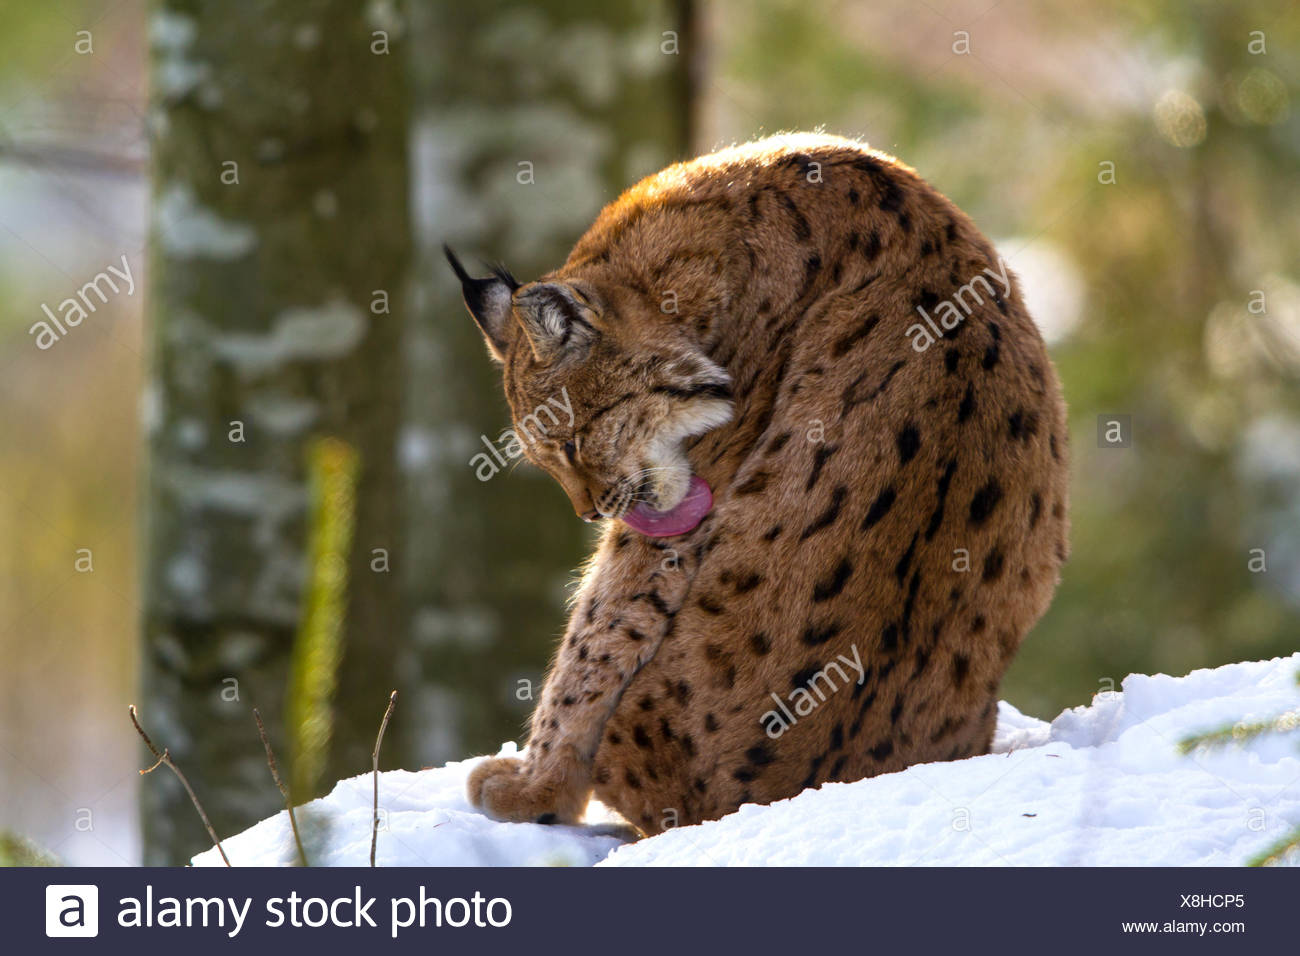 Eurasian lynx (Lynx lynx), sitting in snow caring of its fur, Germany, Bavaria, Bavarian Forest National Park - Stock Image